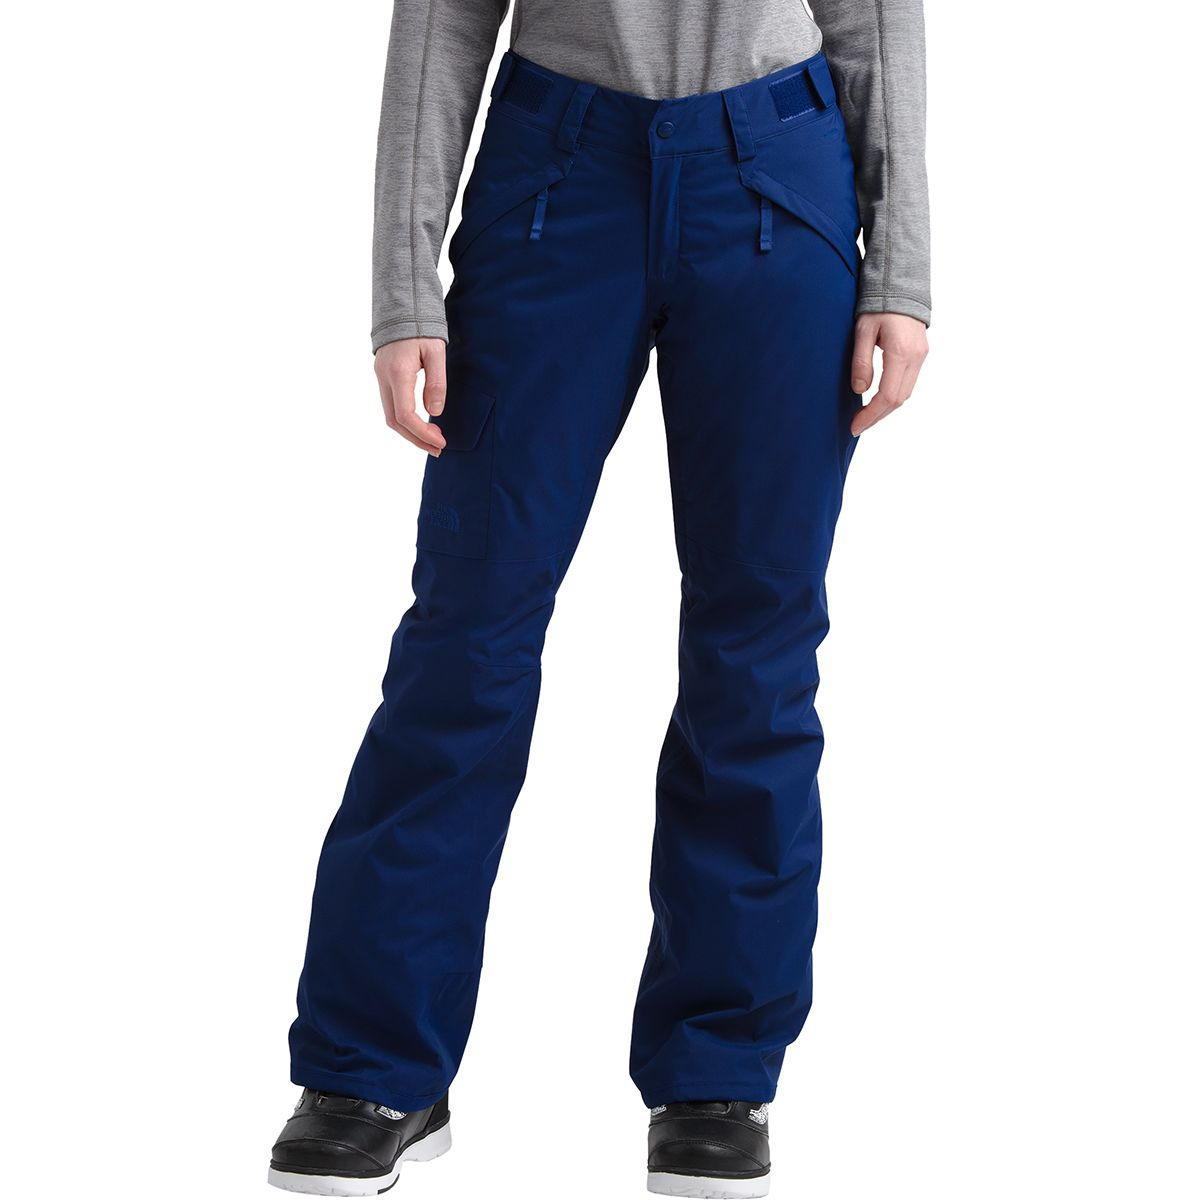 NEW NORTH FACE BOYS FREEDOM INSULATED PANTS SNOW SKI WATERPROOF M MED 10 12 BLUE